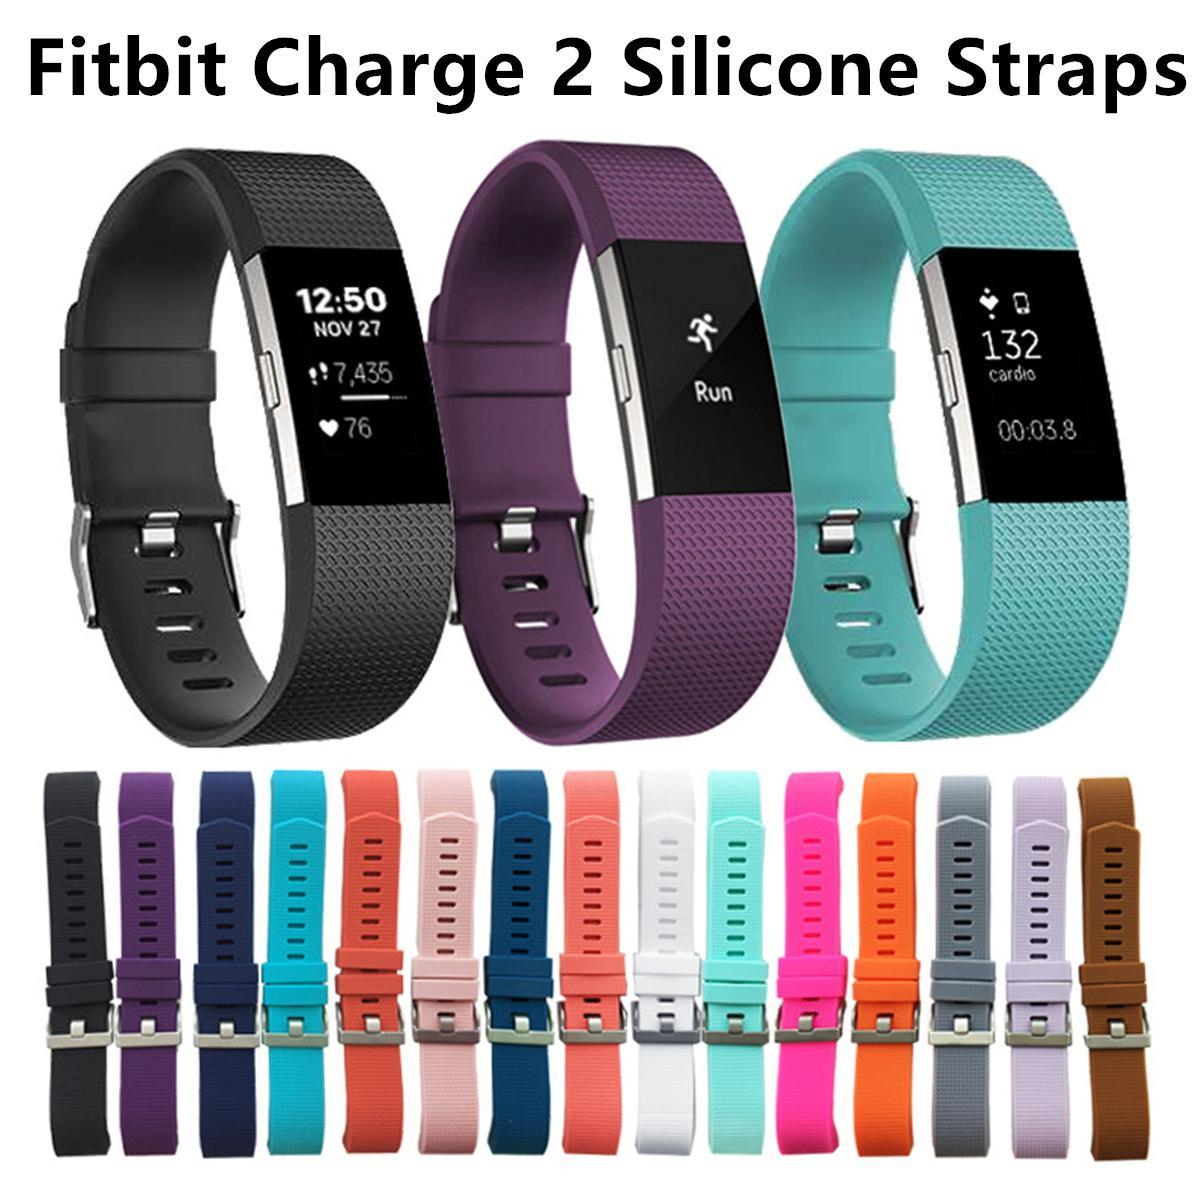 Best Brandnew Strap for Fitbit Charge 2 (+Freebie if you buy 2 )